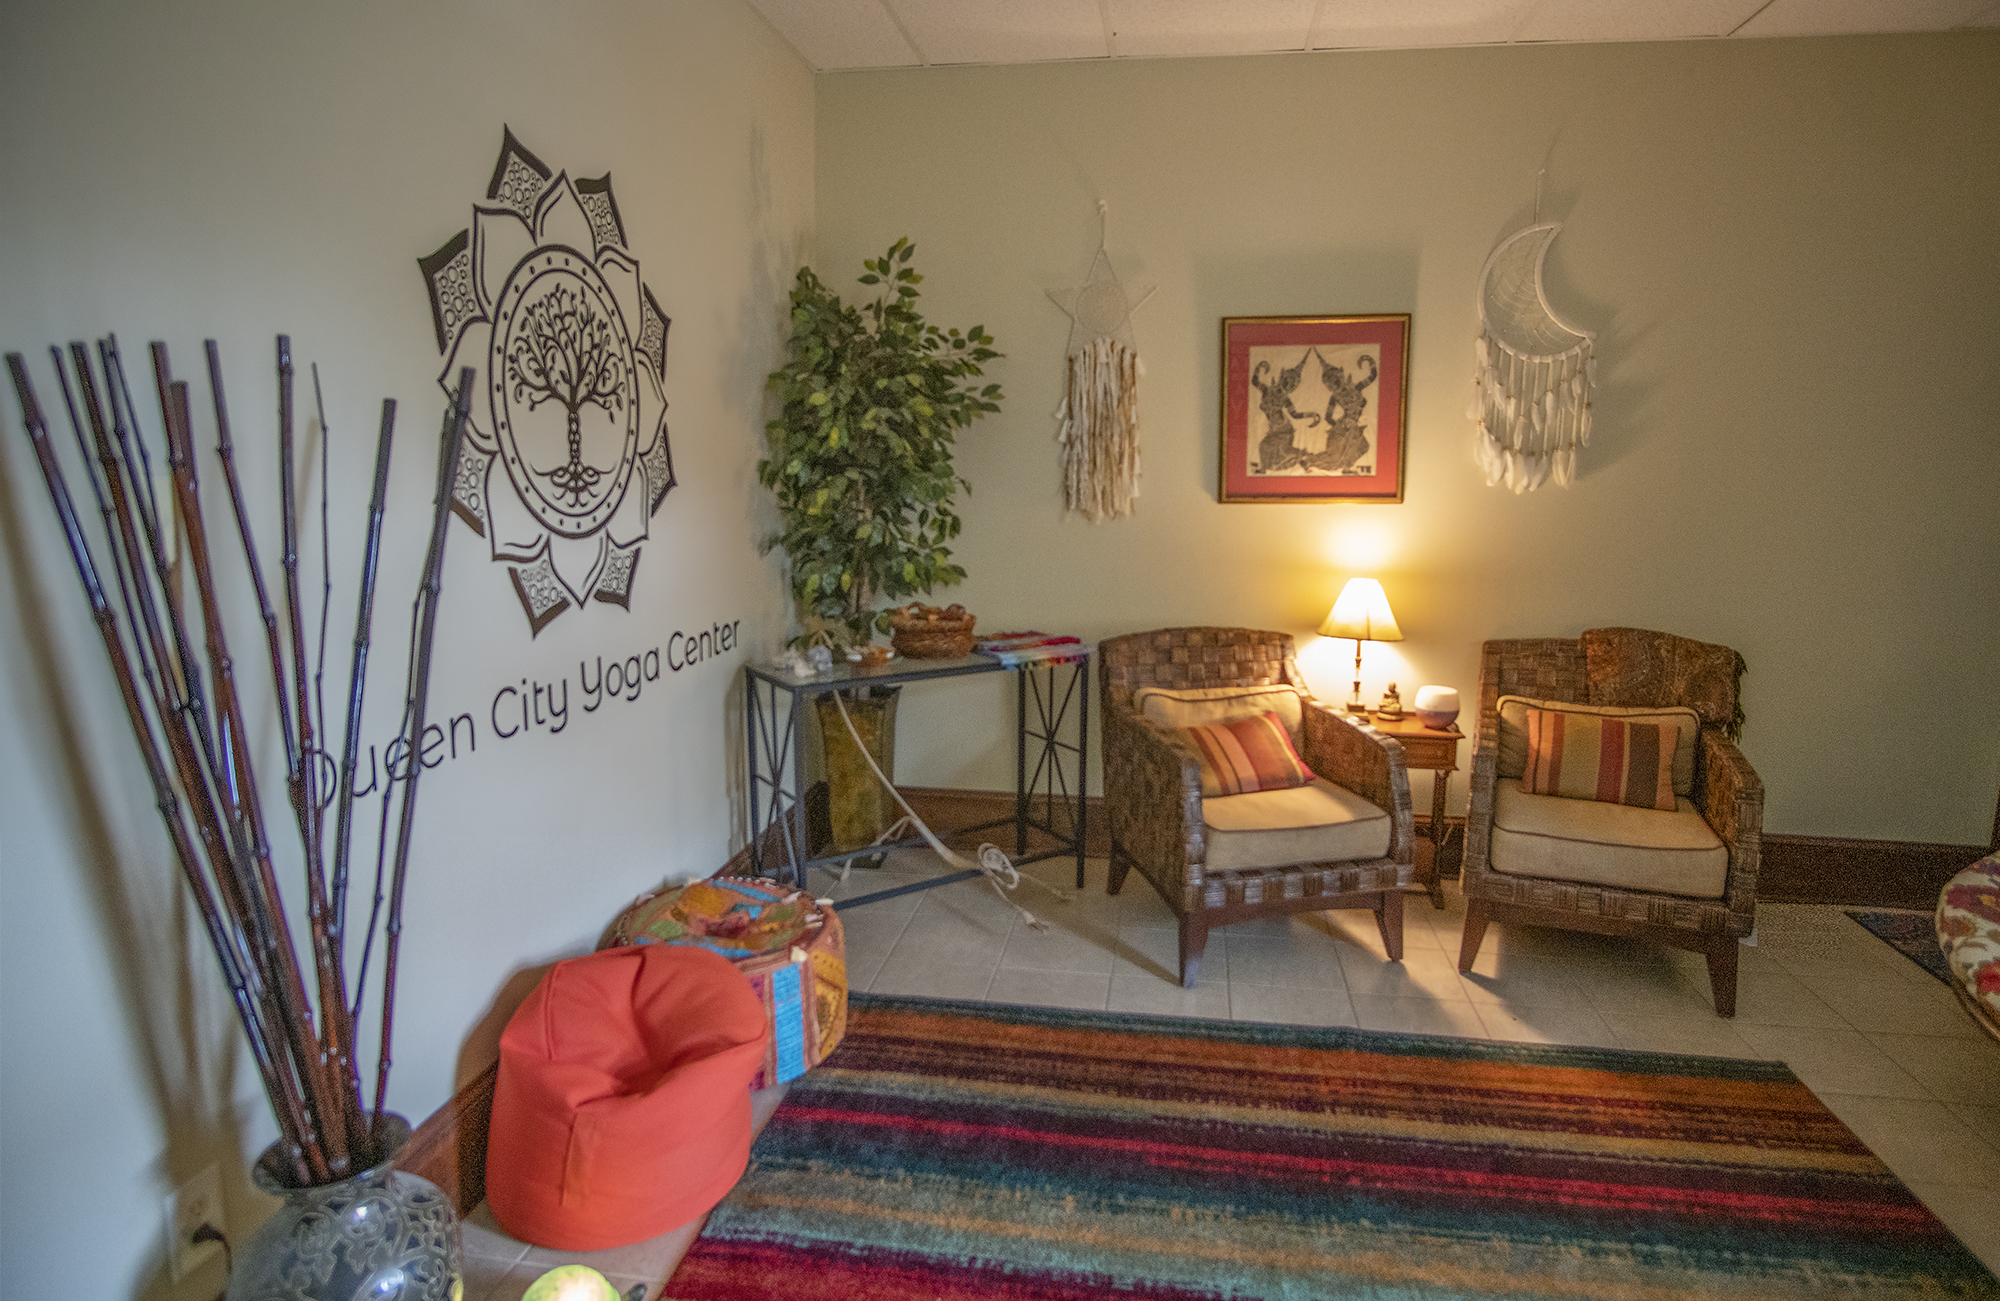 Charlotte S First Yoga Co Op Just Opened The Queen City Yoga Center